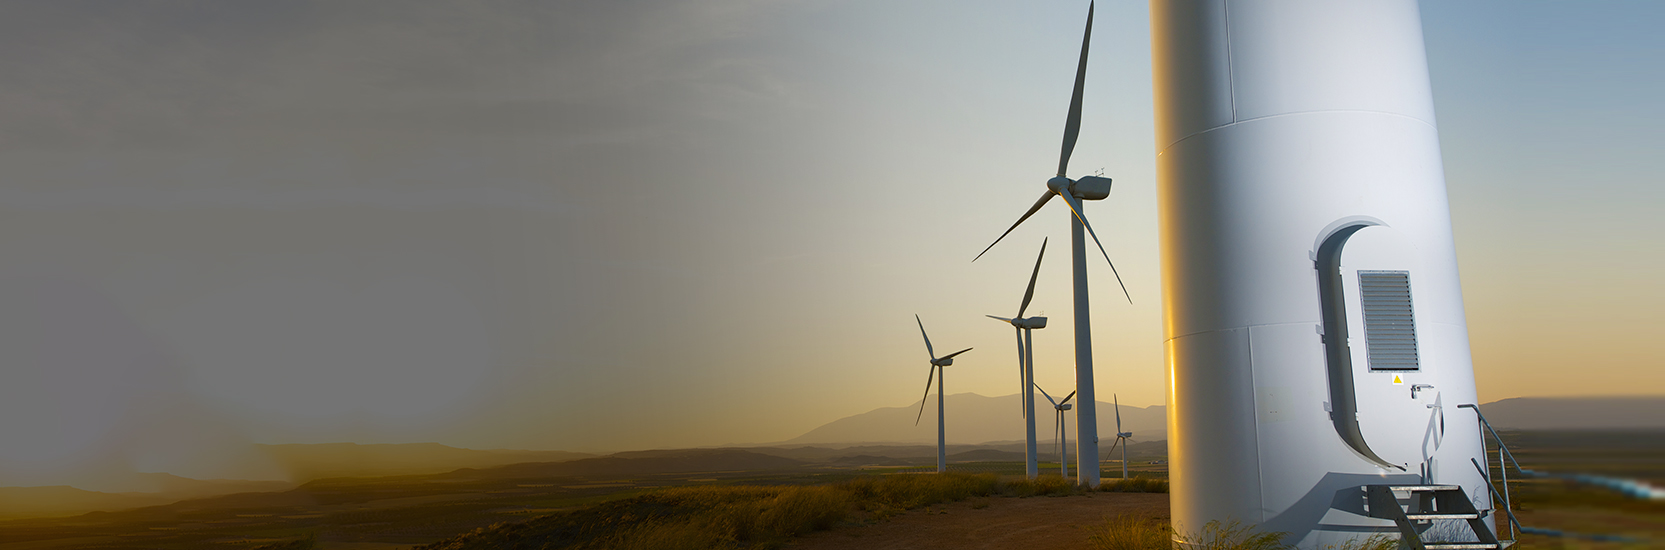 windfarm, infrastructure report